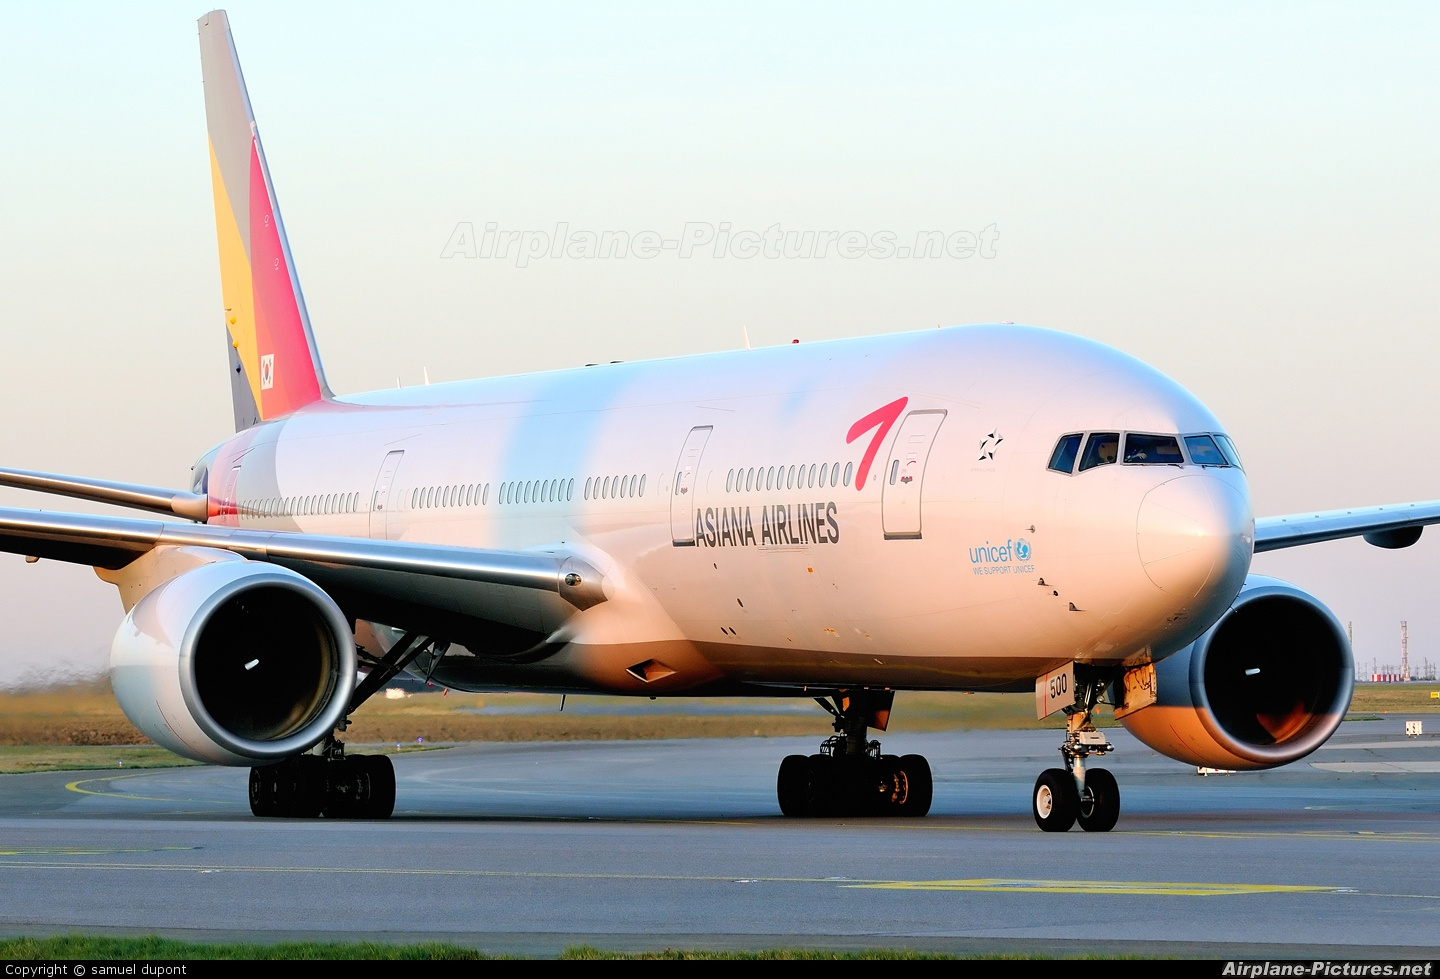 Asiana Airlines HL7500 aircraft at Paris - Charles de Gaulle